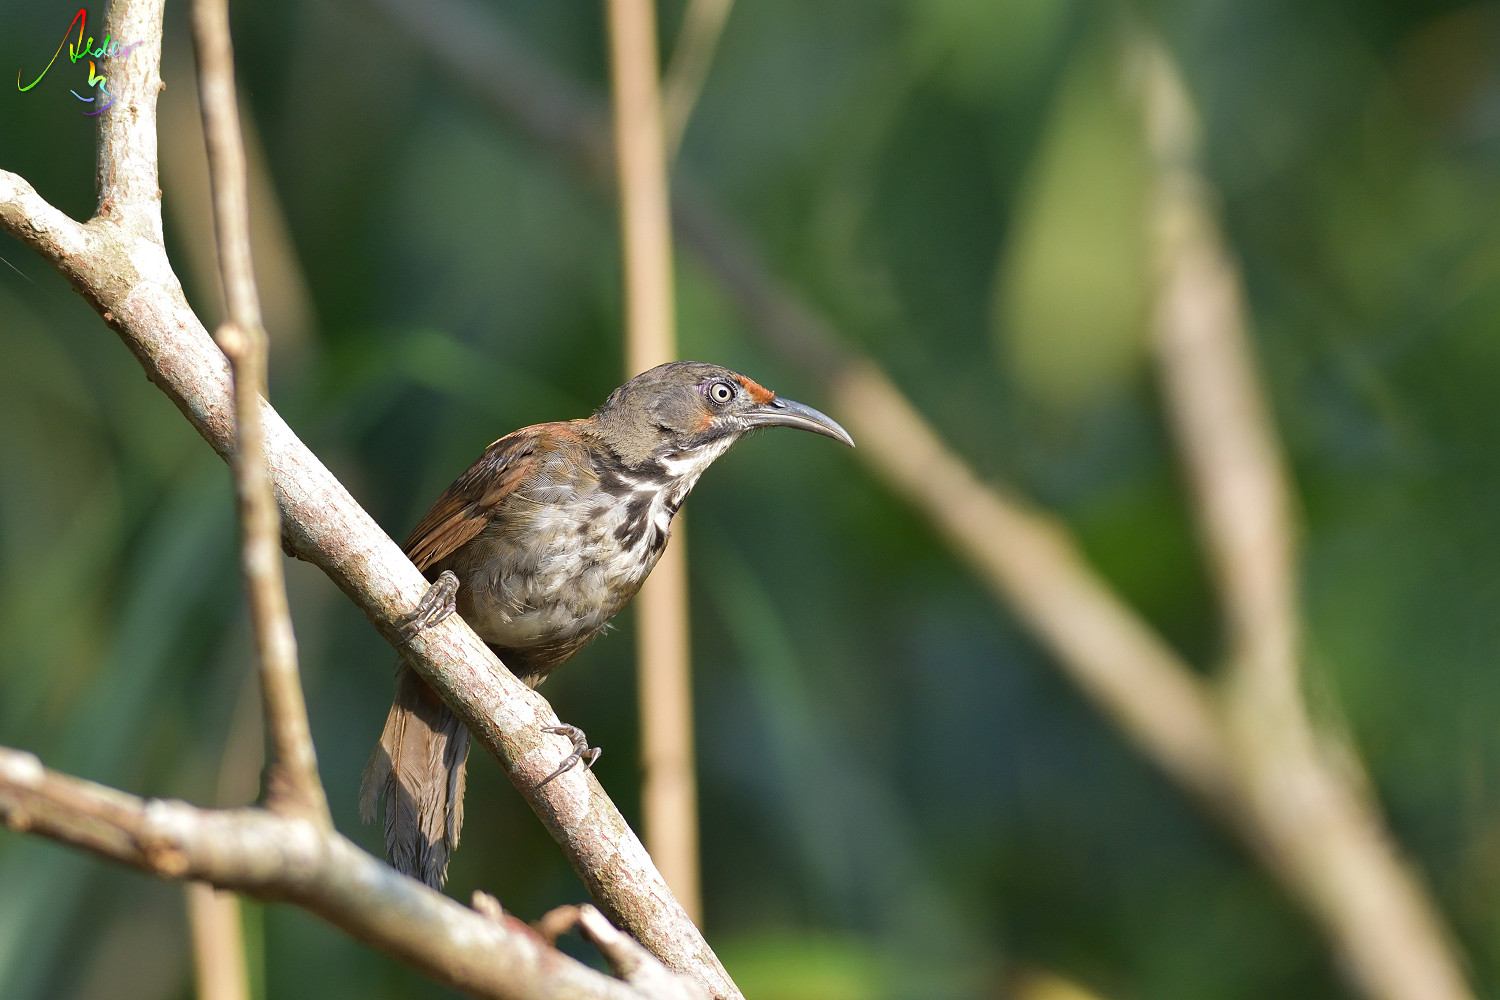 Rusty-cheeked_Scimitar_Babbler_4307